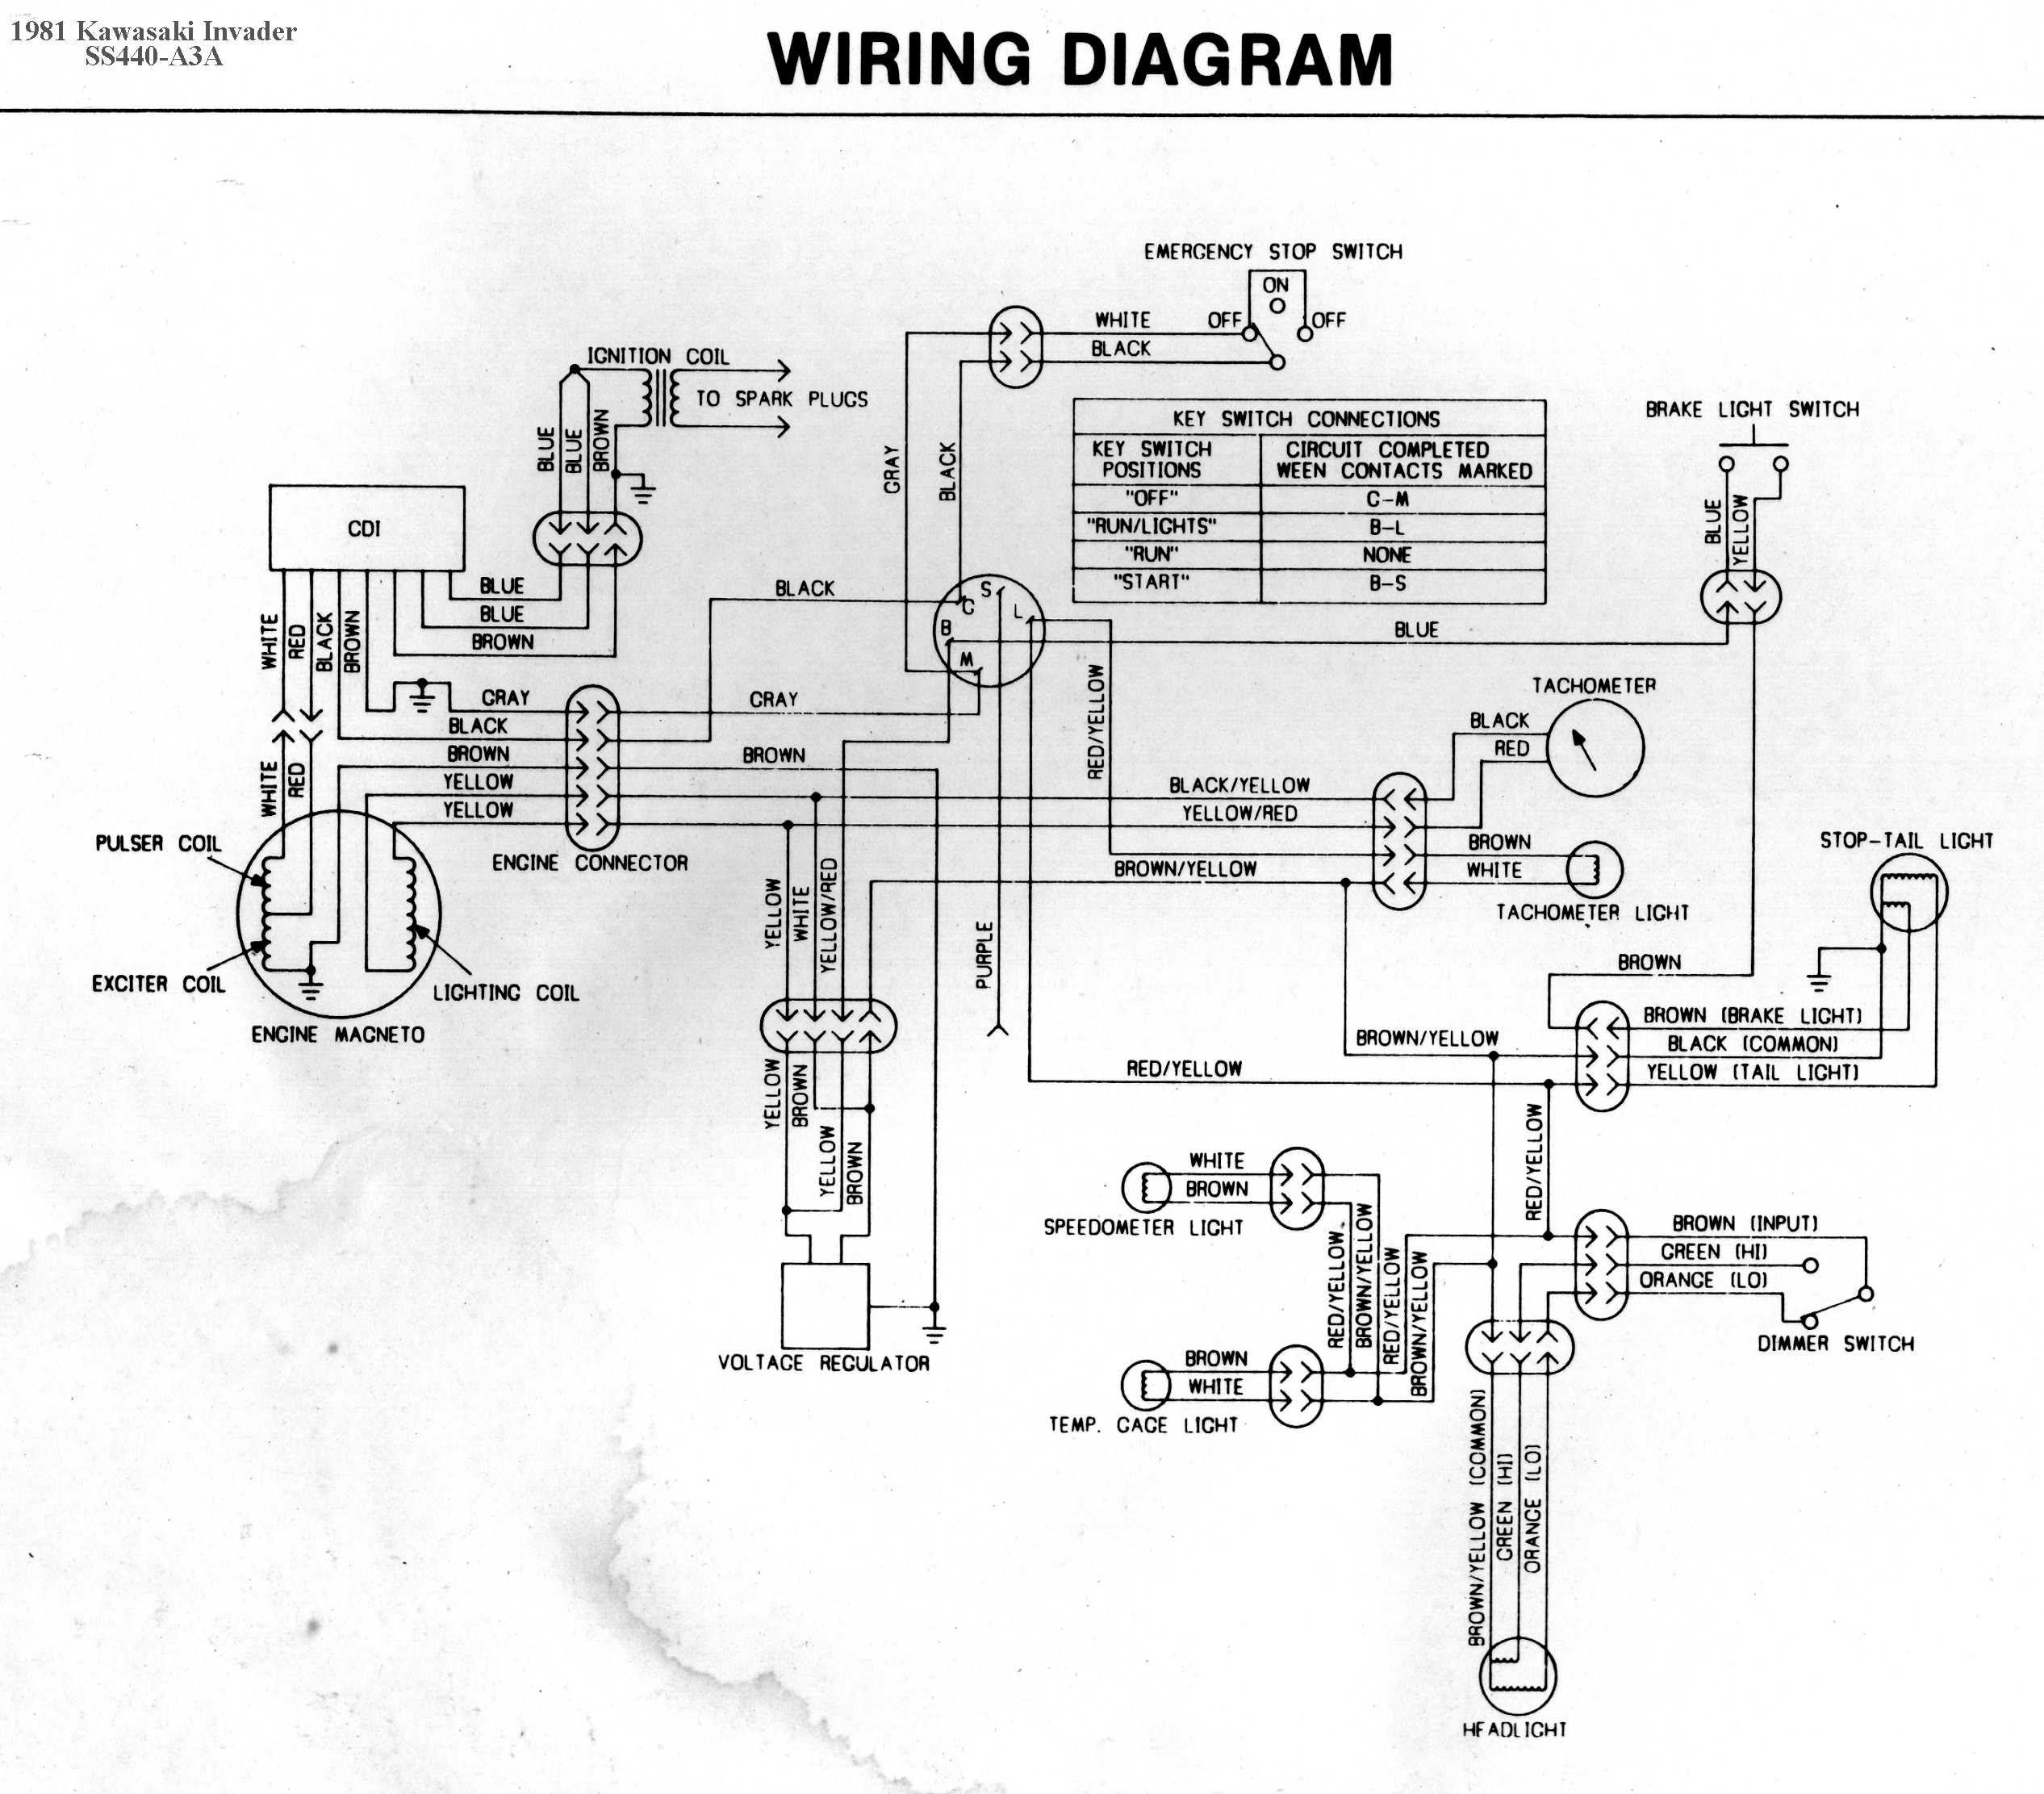 Diagram 2002 Ski Doo Legend Wiring Diagram Full Version Hd Quality Wiring Diagram Diagramhugs Lamorefamale It